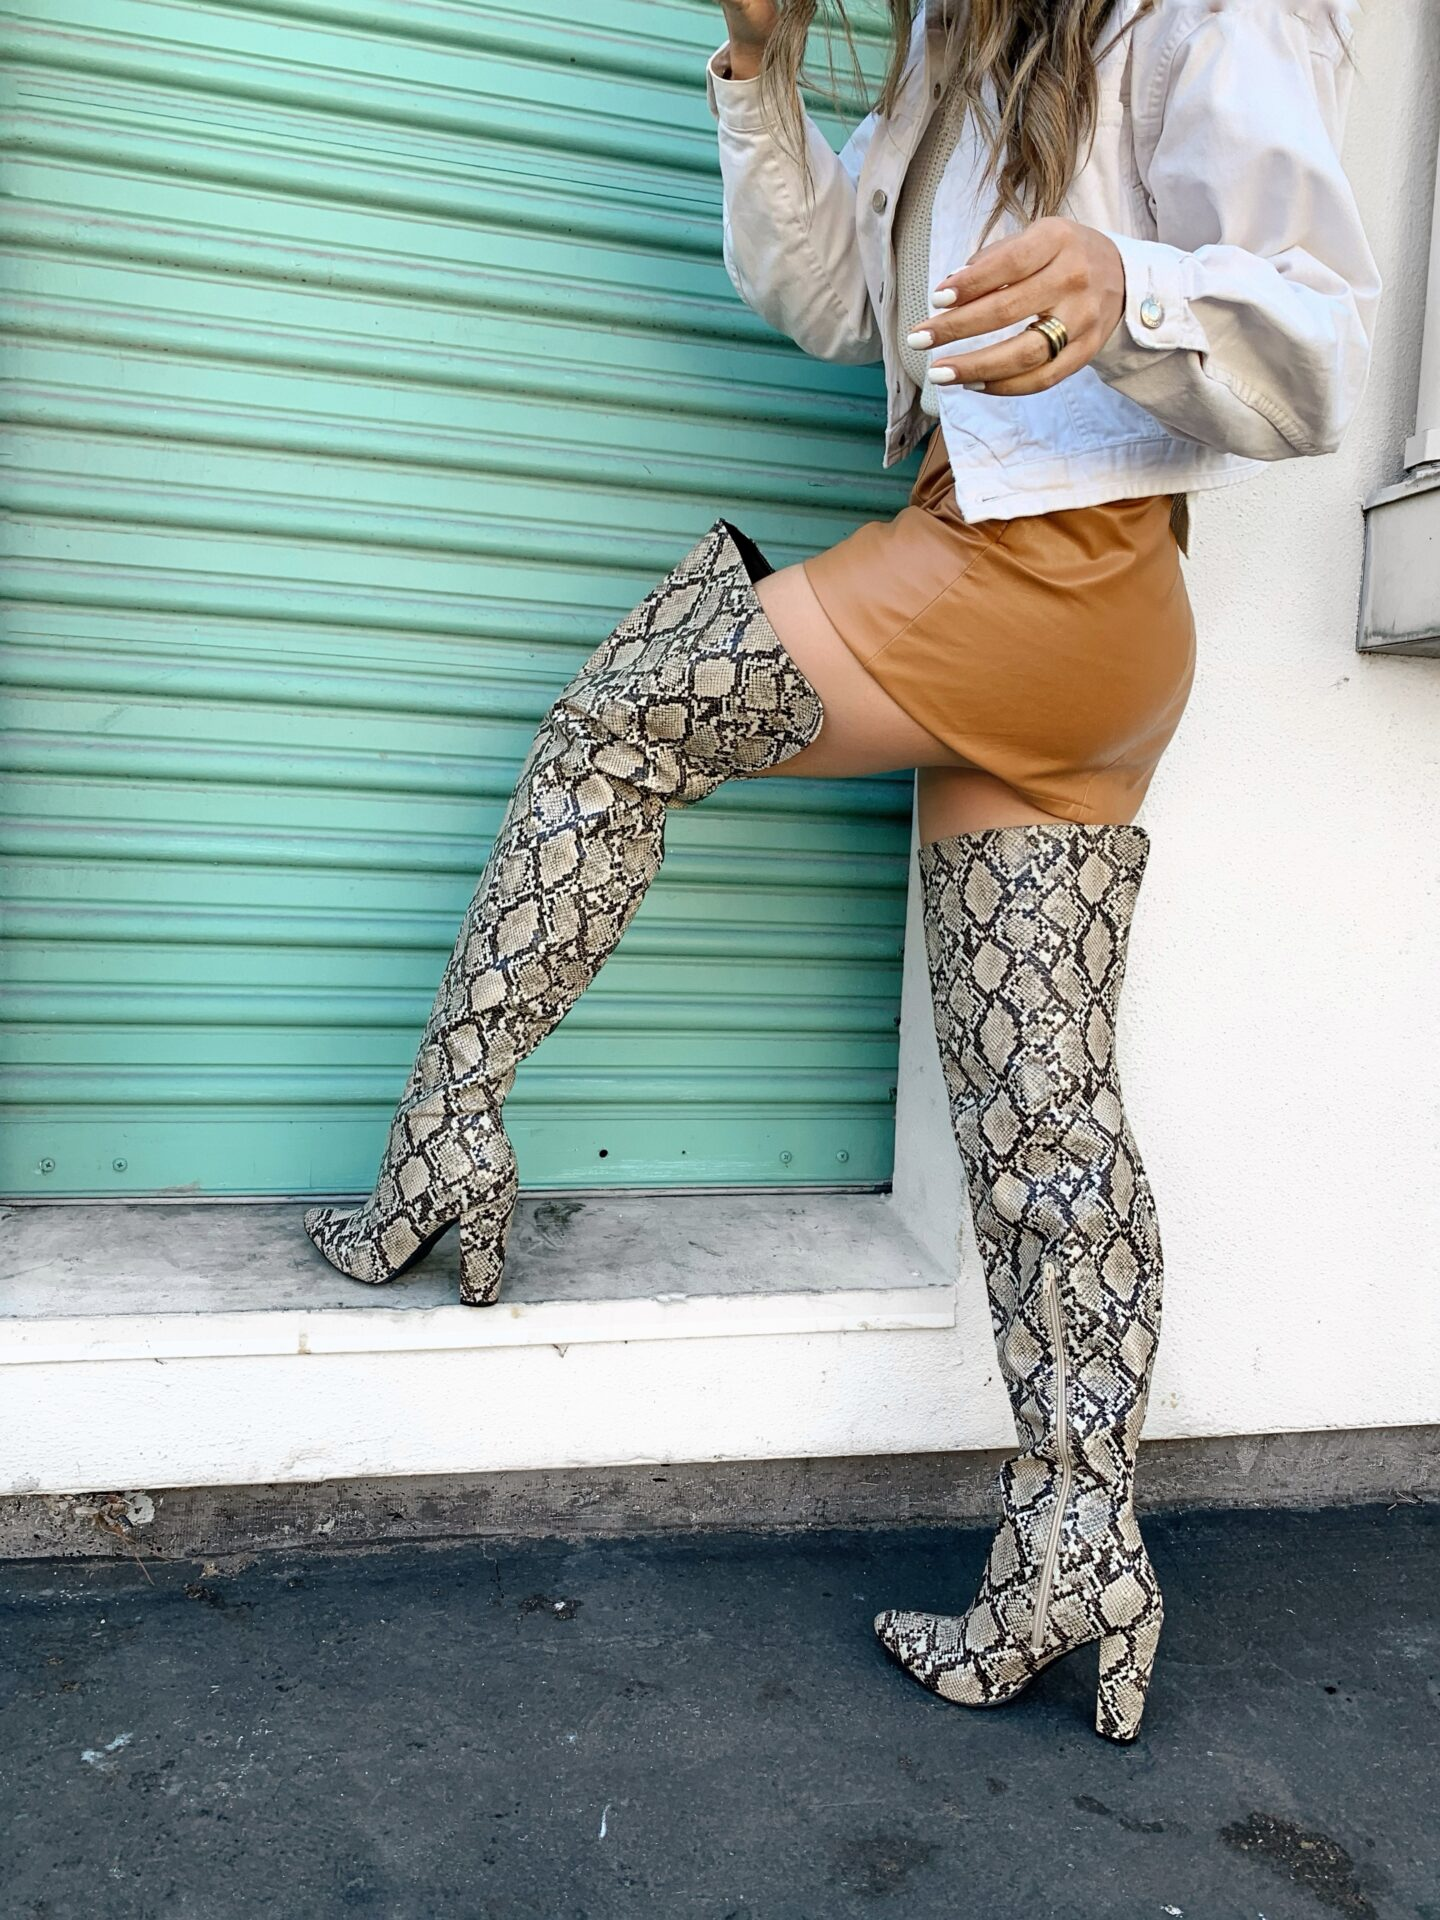 Alexis Alcala sharing this seasons hottest winter boots wearing Cupid and zooshoo